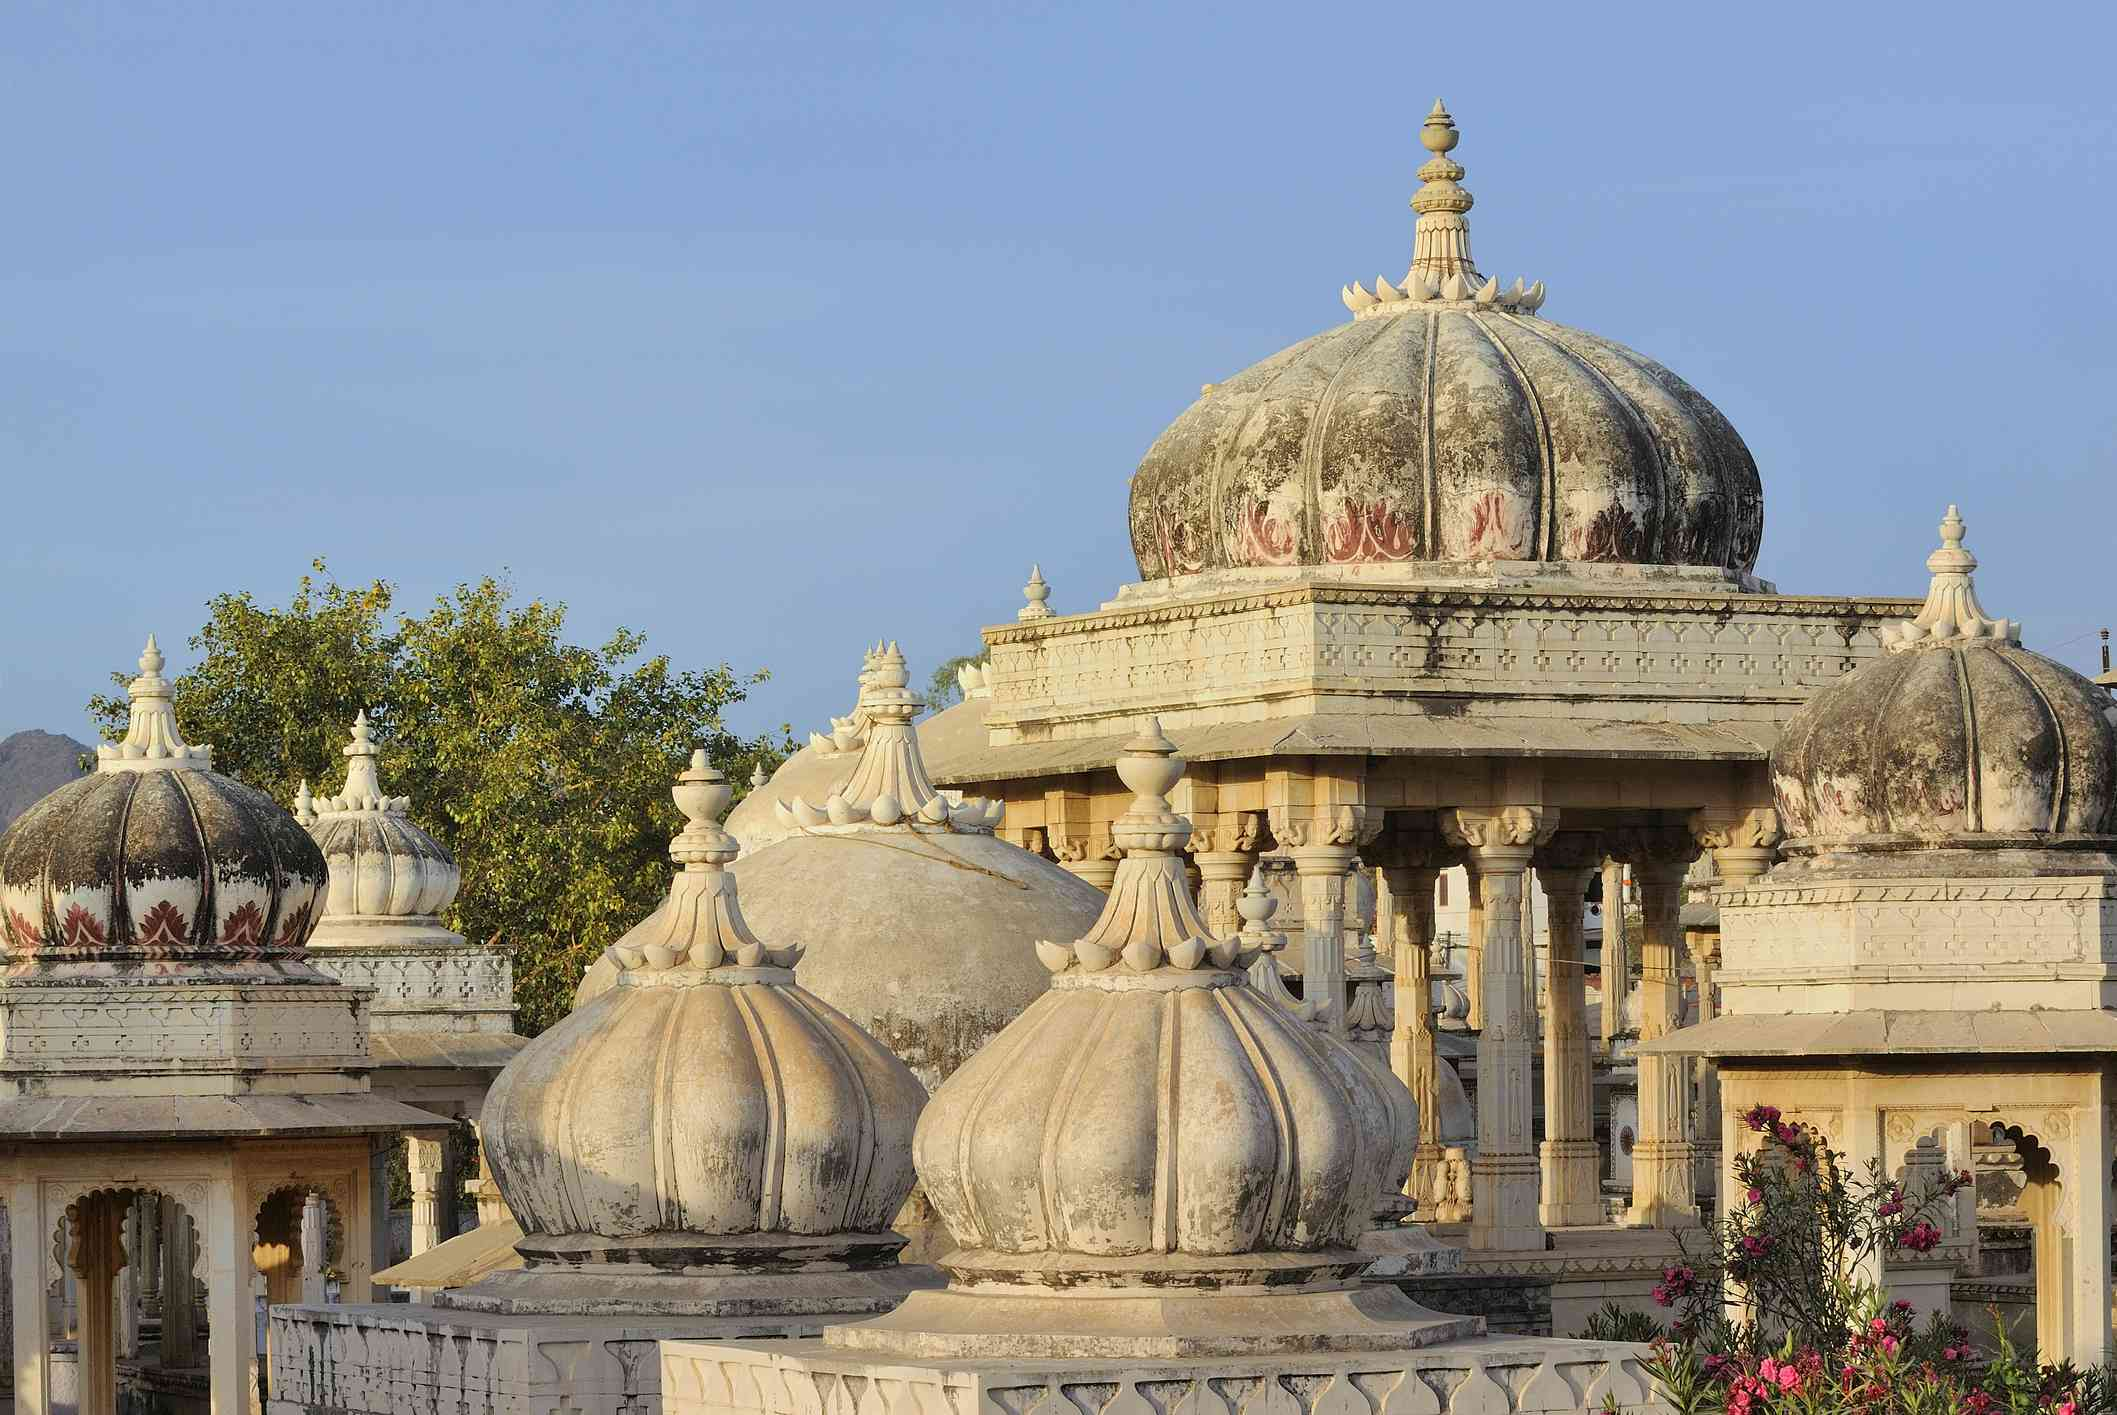 Domed-roofed stone cenotaphs in Udaipur